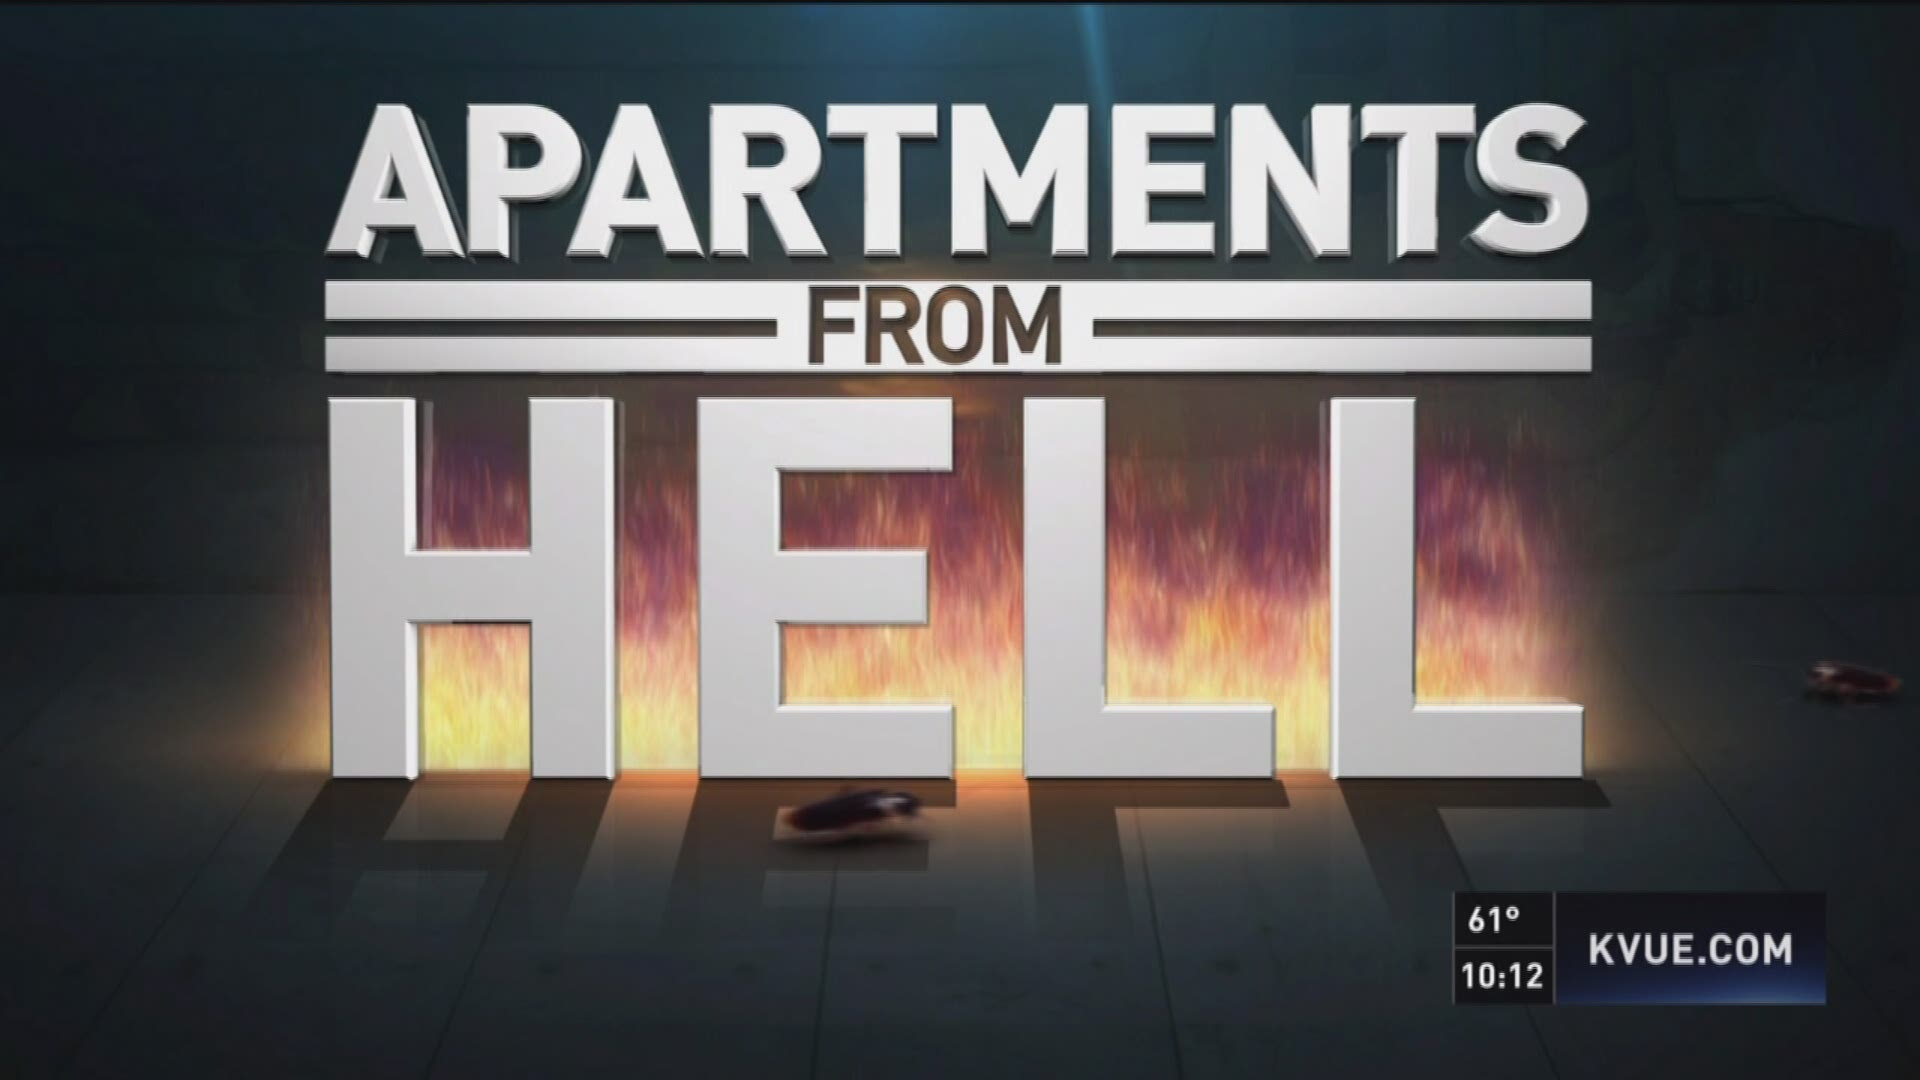 Luxury apartment renters upset with leaks, fees